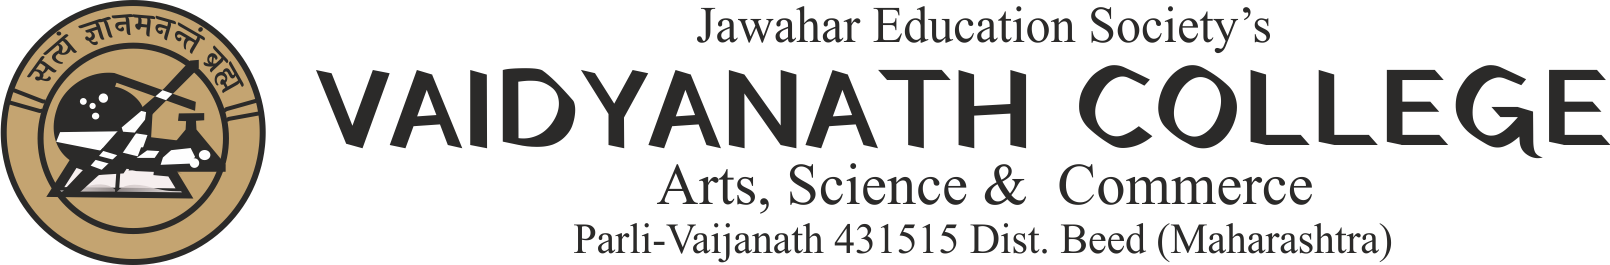 Vaidyanath College Art, Science & Commerce Parli vaijanath | Jawahar Education Society's